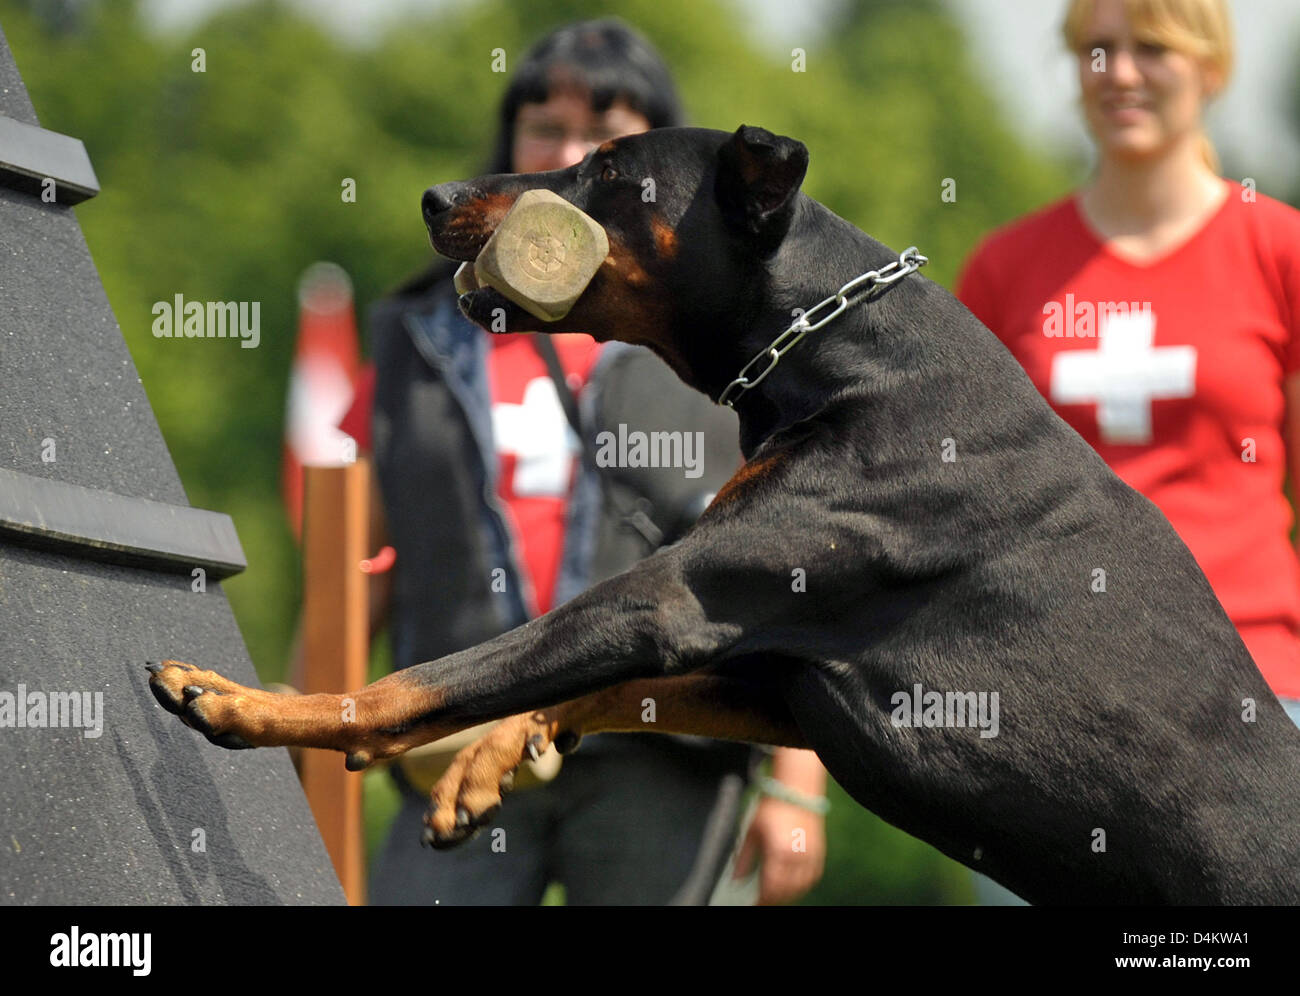 A dobermann of the Swiss national team jumps over an obstacle during the training for the Dobermann World Championships - Stock Image